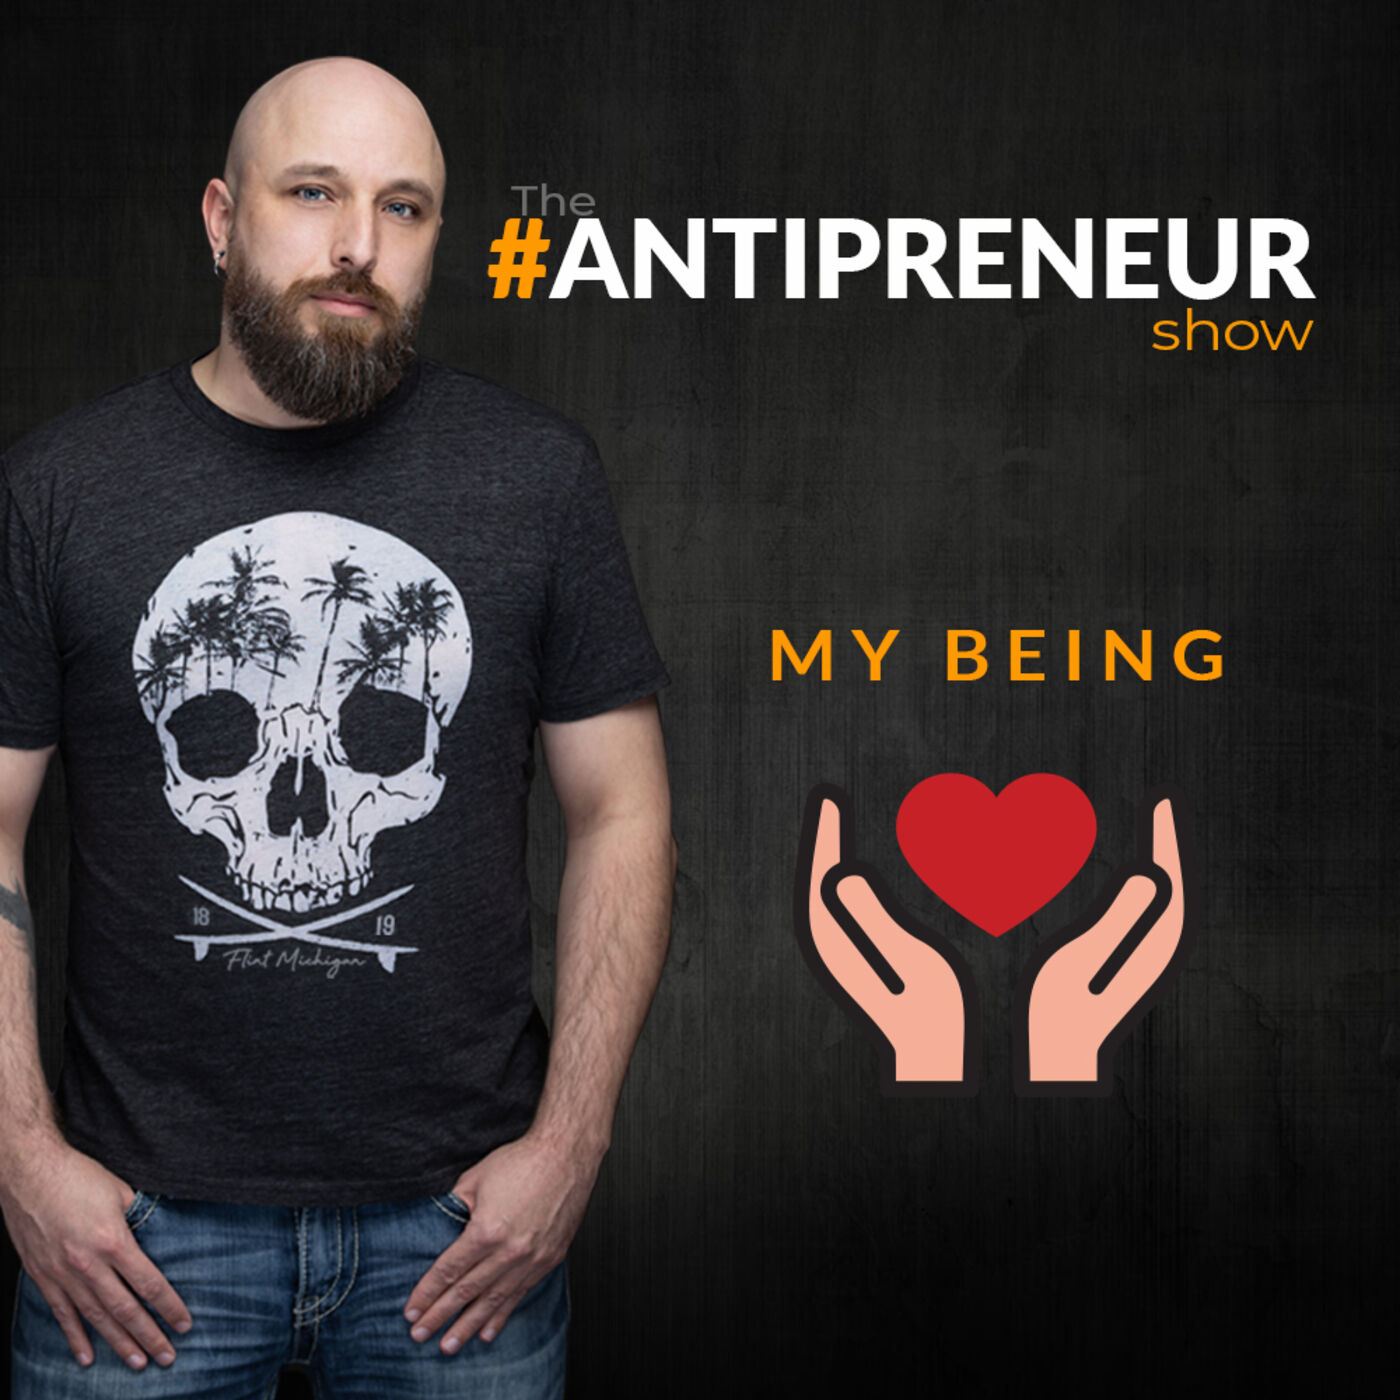 #38 - My Being - The #Antipreneur Show